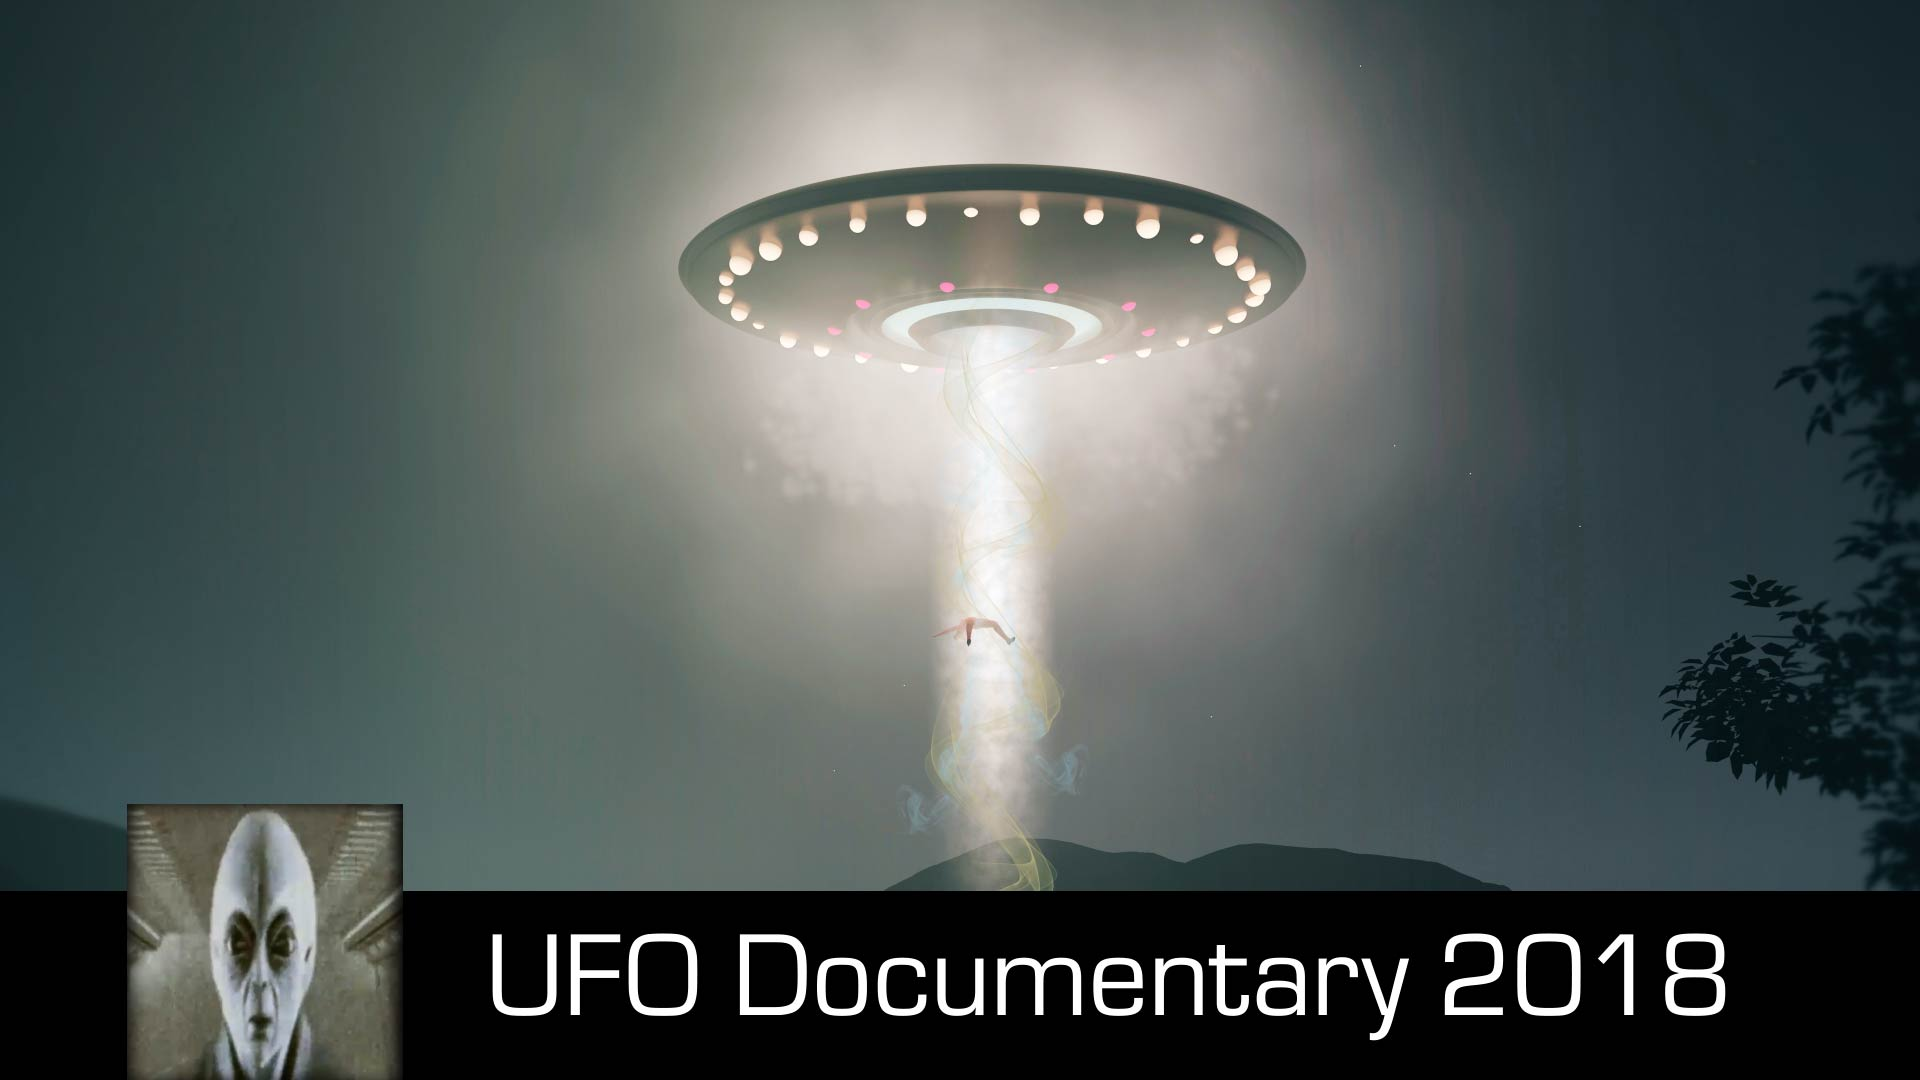 UFO Documentary August 25th 2018